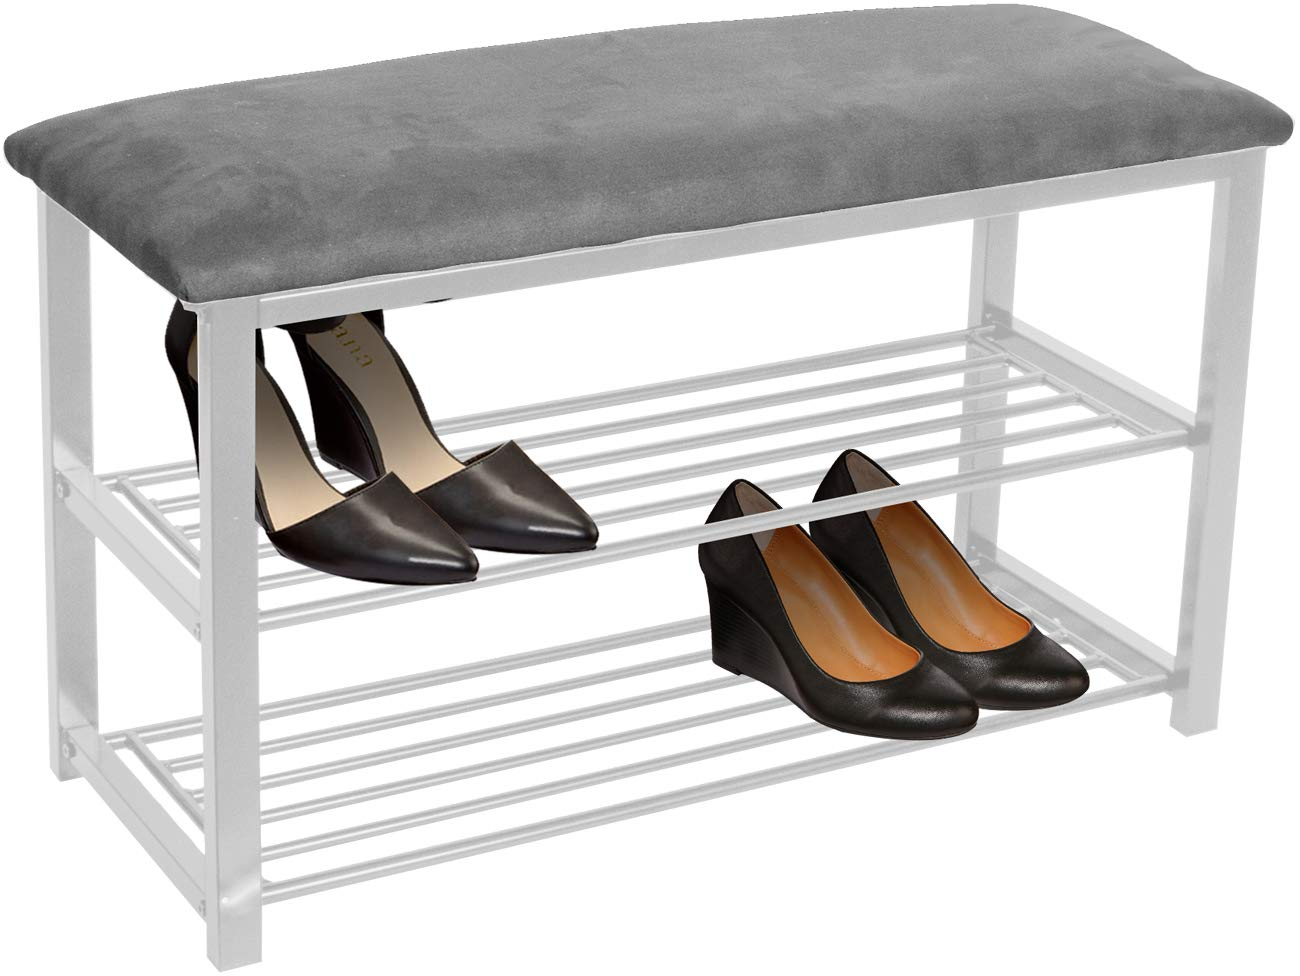 Sorbus Shoe Rack Bench - Shoes Racks Organizer - Perfect Bench Seat Storage for Hallway Entryway, Mudroom, Closet, Bedroom, etc (Gray/White) by Sorbus